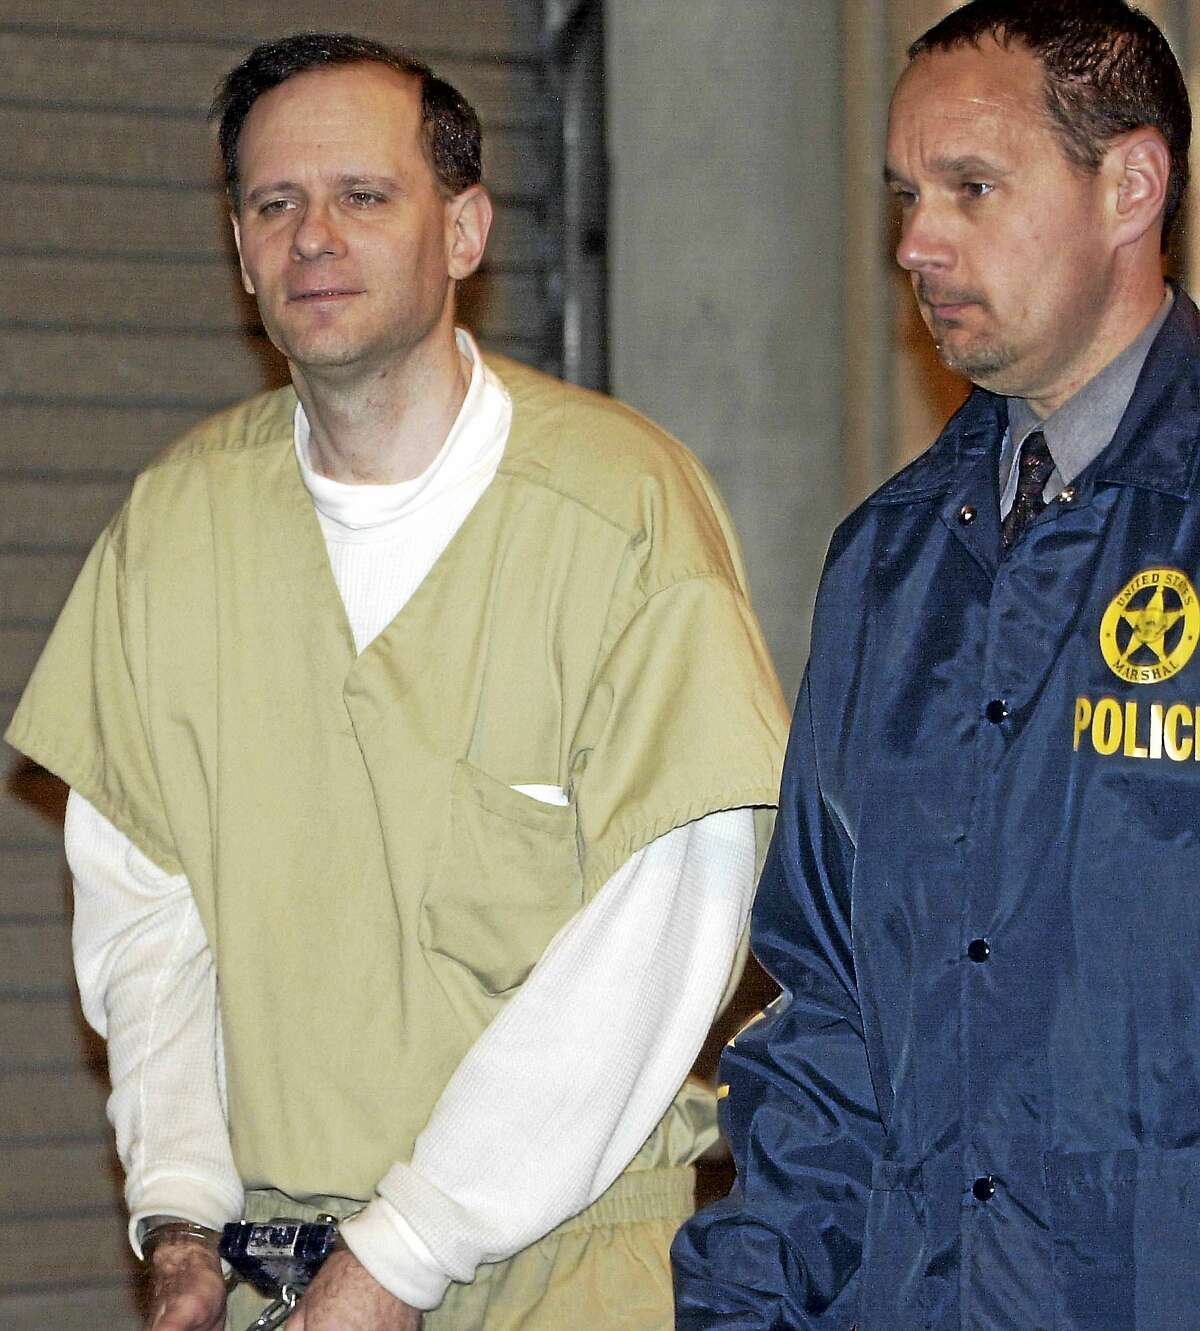 In this May 15, 2002 file photo, Martin Frankel, a financier accused of stealing more than $200 million from insurance companies, is escorted from U.S. District Court in New Haven, Conn. Frankel was sentenced in 2004 to 17 years behind bars, and released to a halfway house in September 2015. Frankel is due back in New Haven federal court on Oct. 1, 2015, less than a month after getting out of prison, charged with violating the terms of his release.